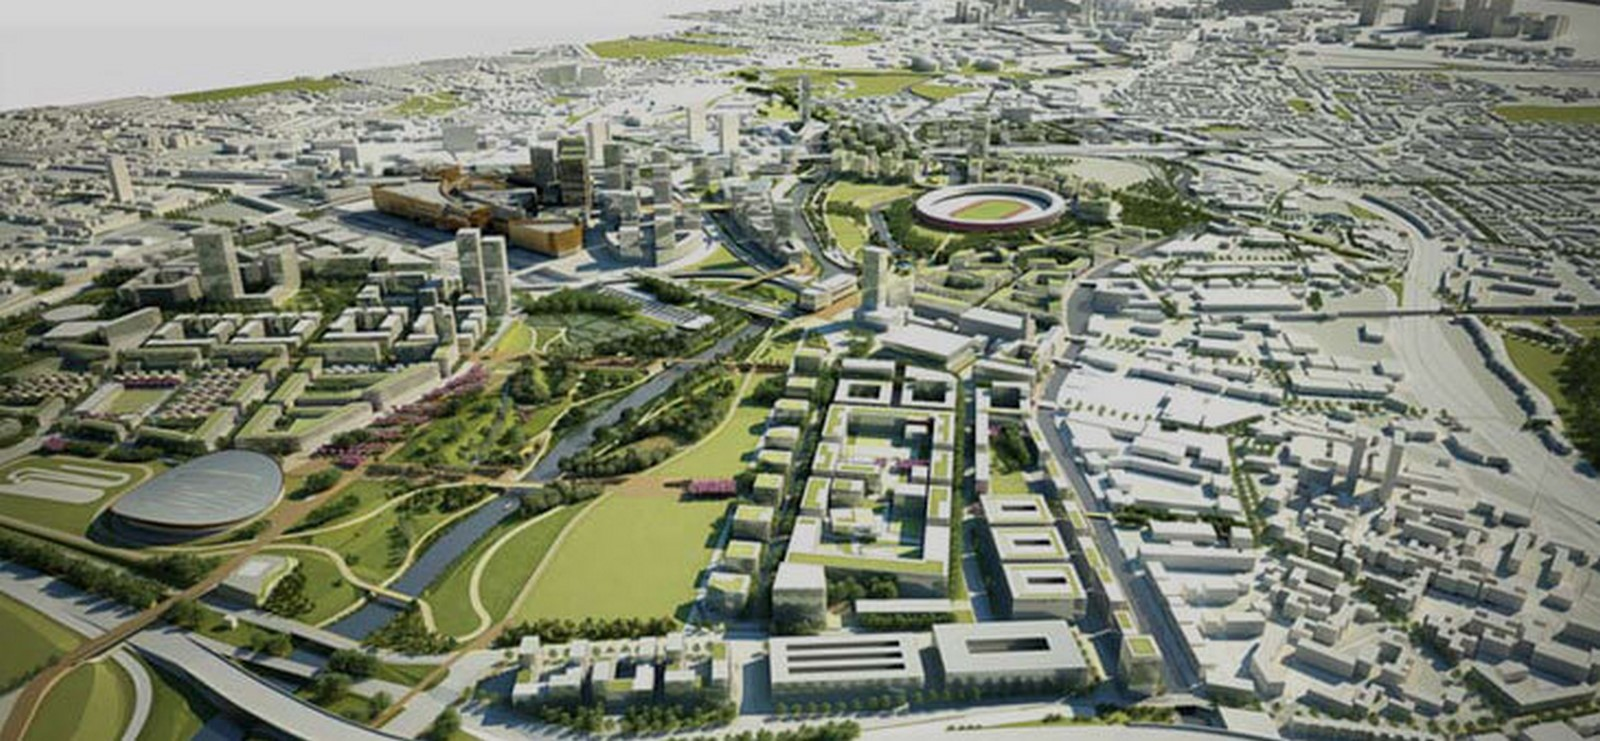 10 Masters options for architects interested in Urban Planning - Sheet10